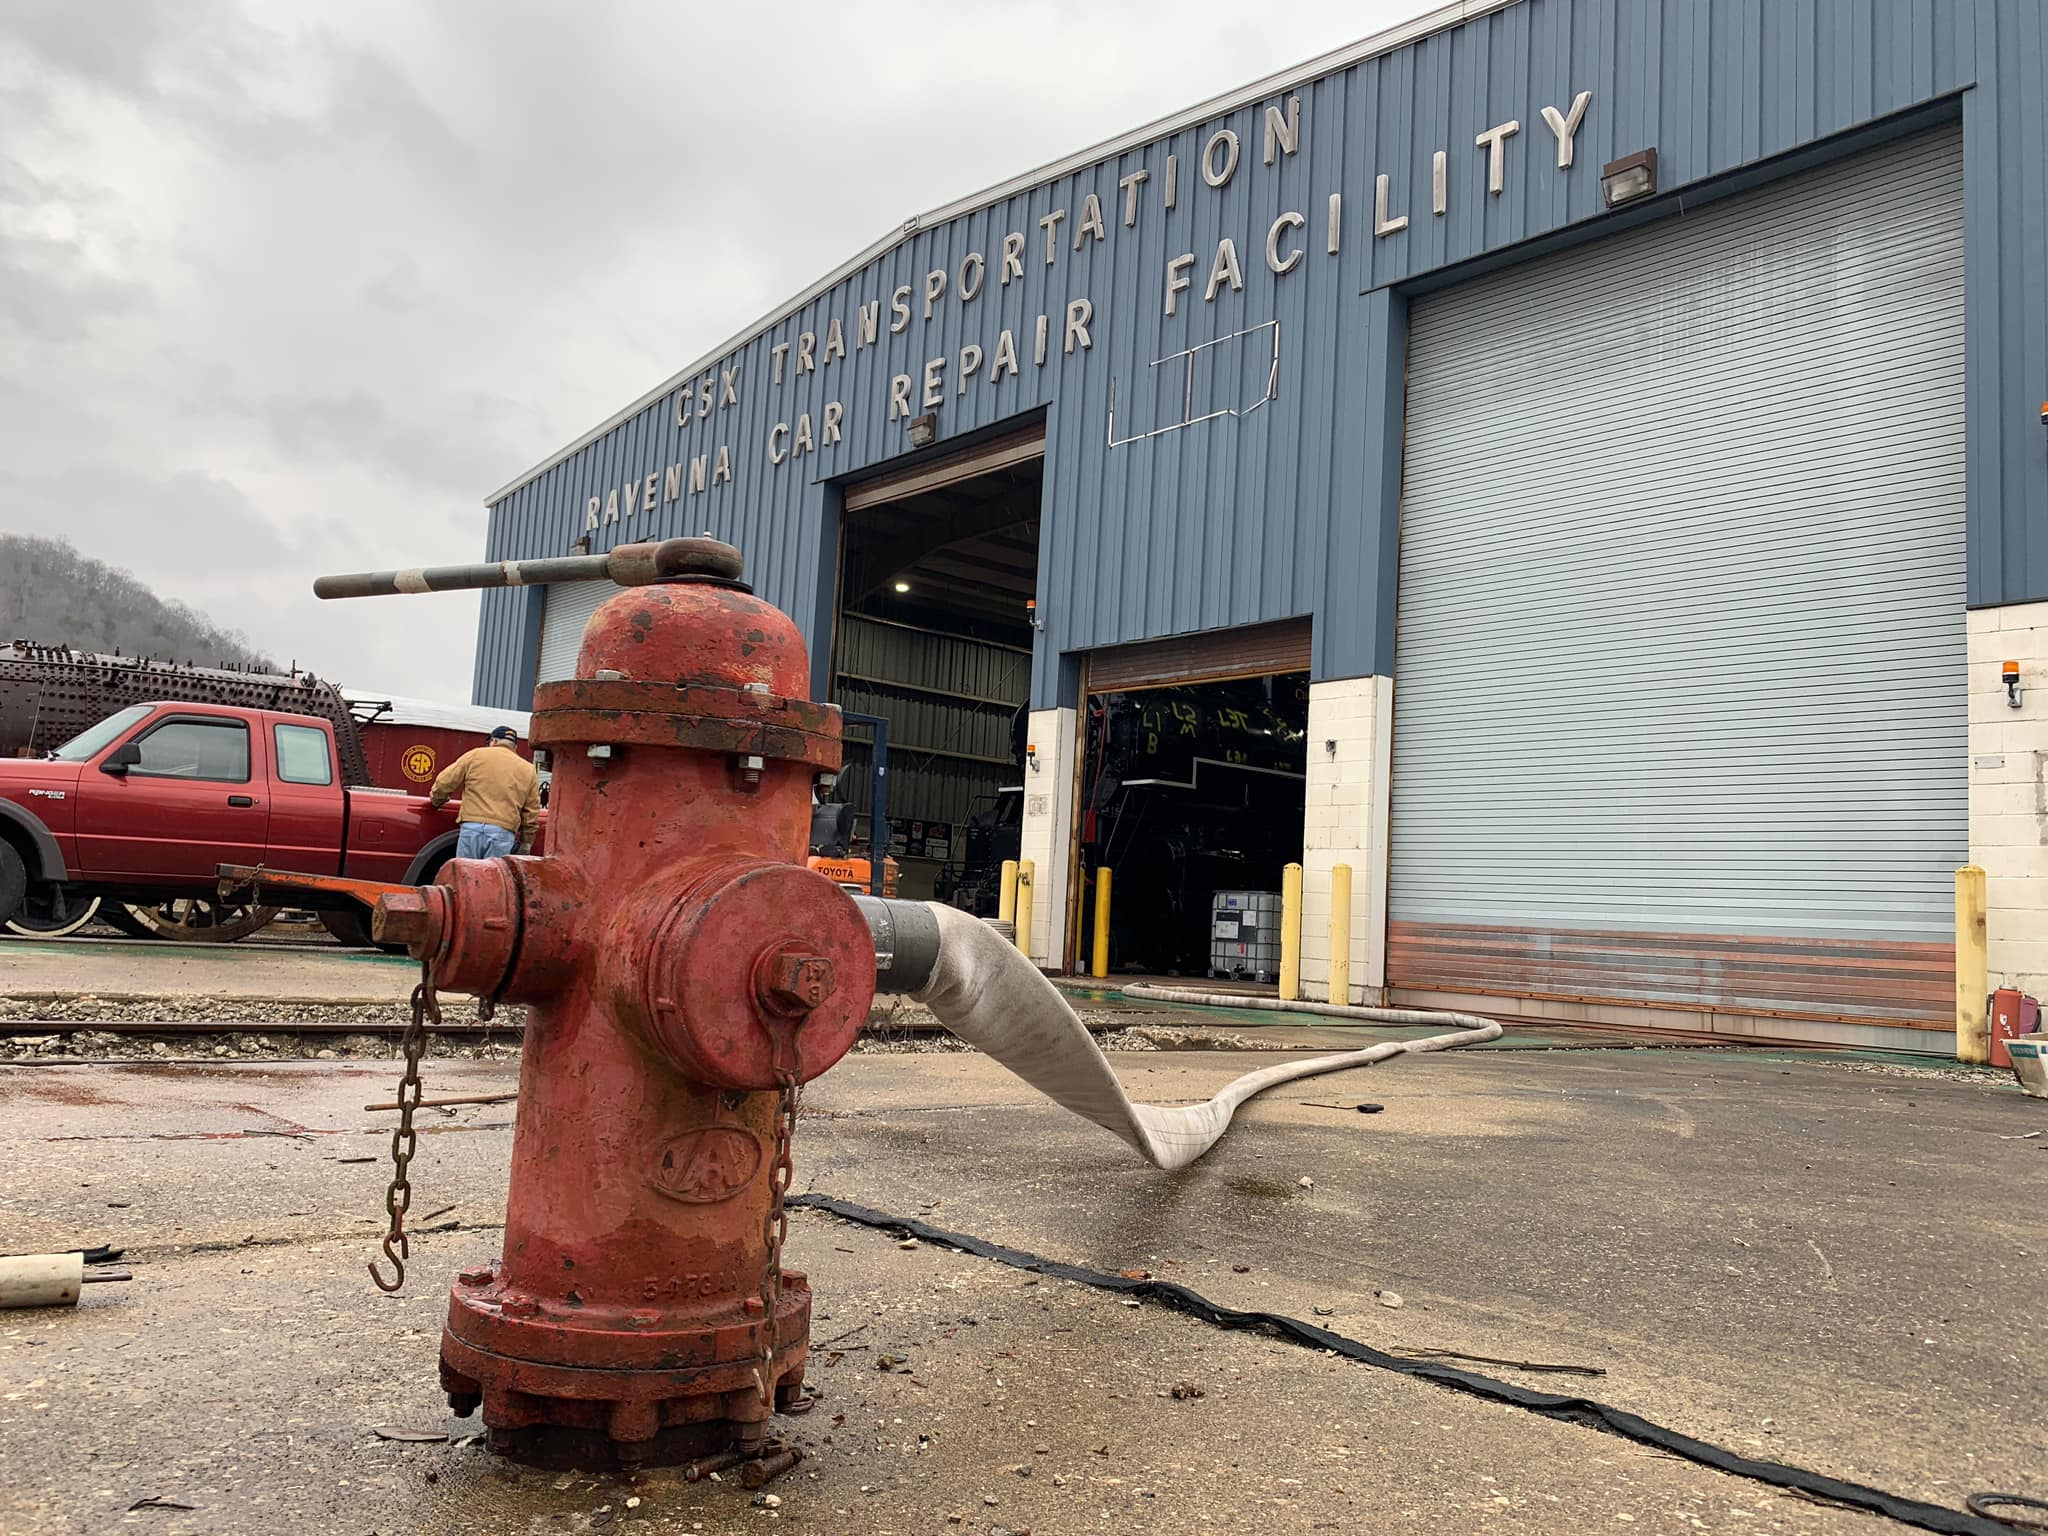 Fire hydrant outside the machine shop